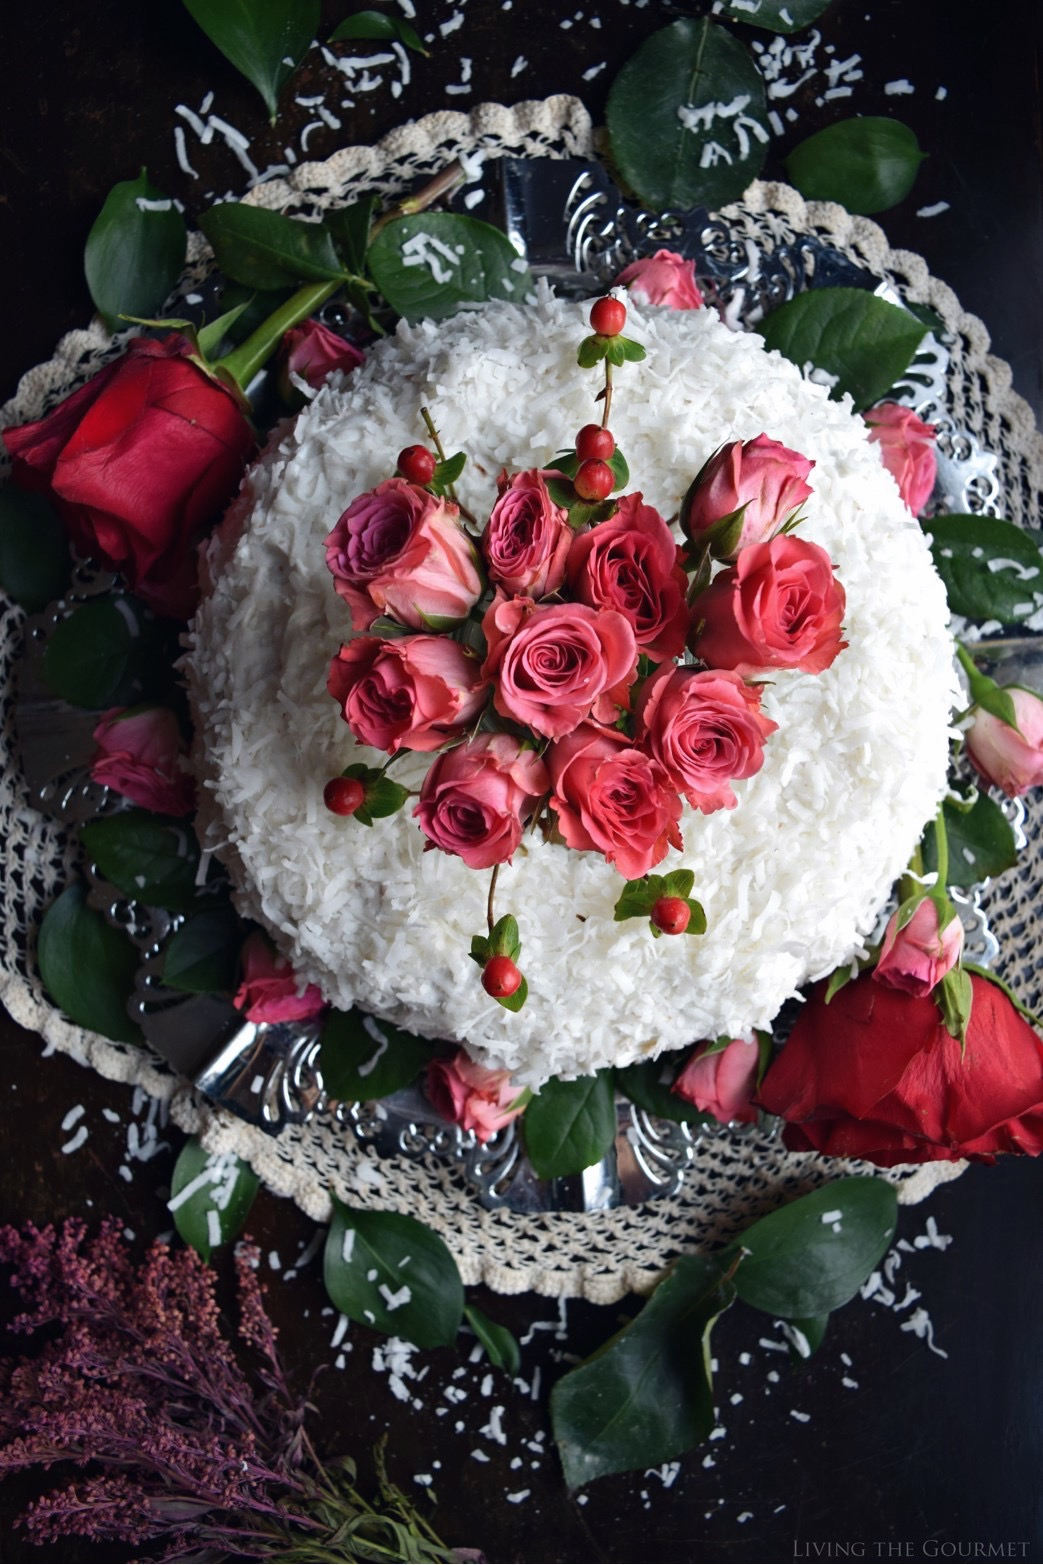 Living the Gourmet: Christmas Rose Bundt Cake | #BundtBakers